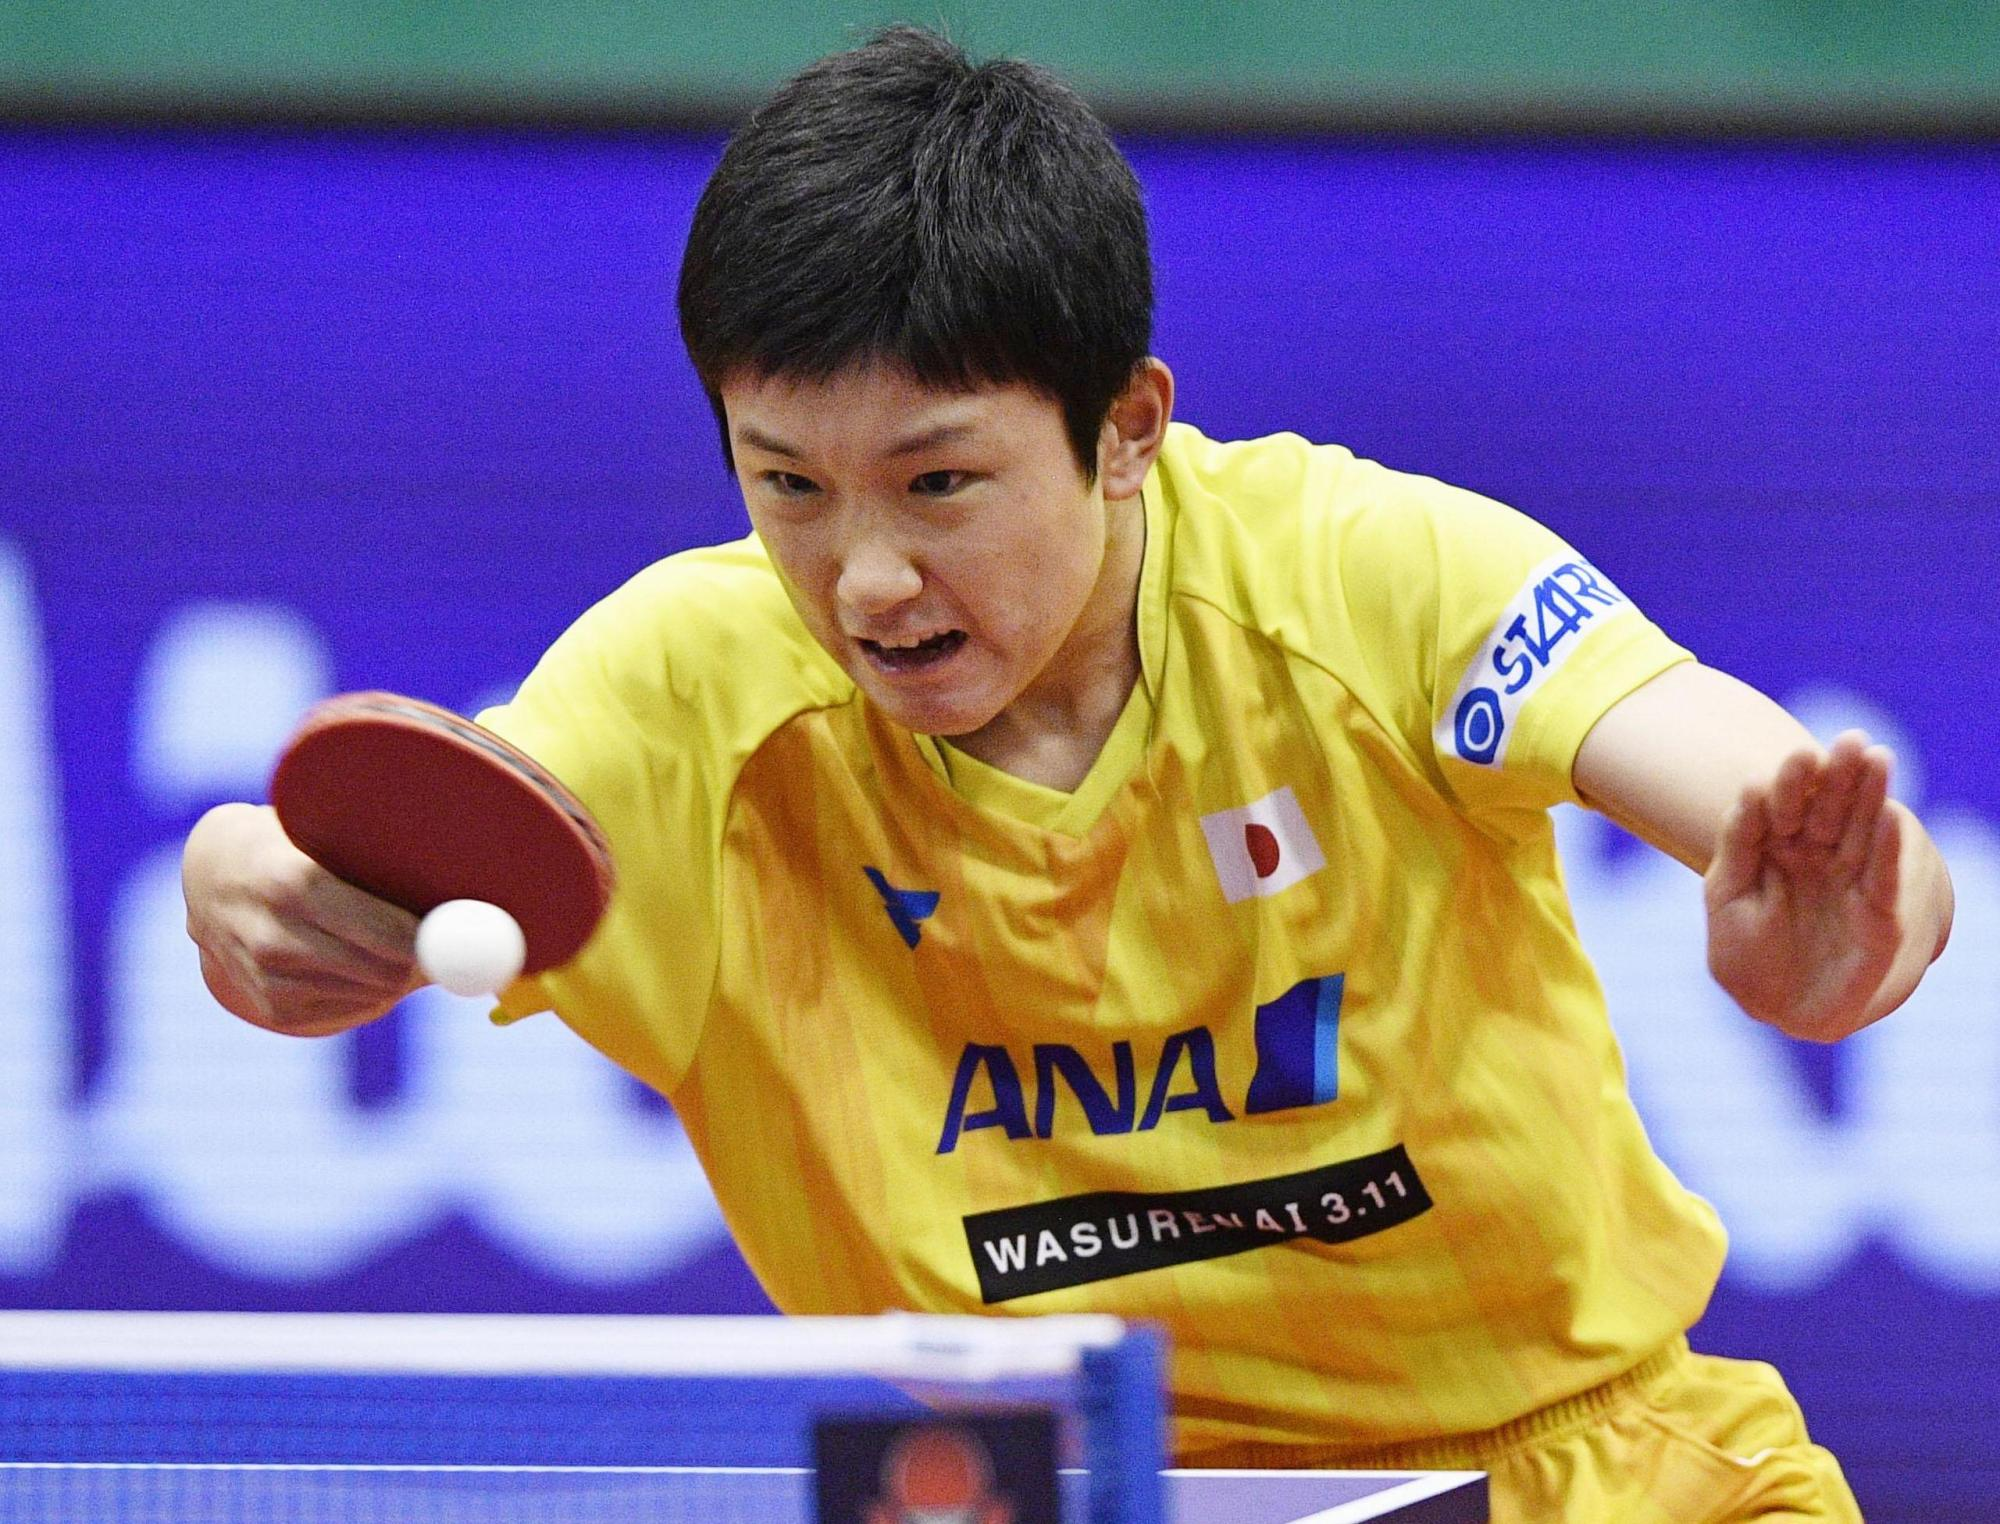 Tomokazu Harimoto competes against two-time Olympic champion Ma Long of China on Saturday in the Japan Open quarterfinals in Kitakyushu. Harimoto won 11-8, 11-9, 11-7, 3-11, 2-11, 11-6.   KYODO